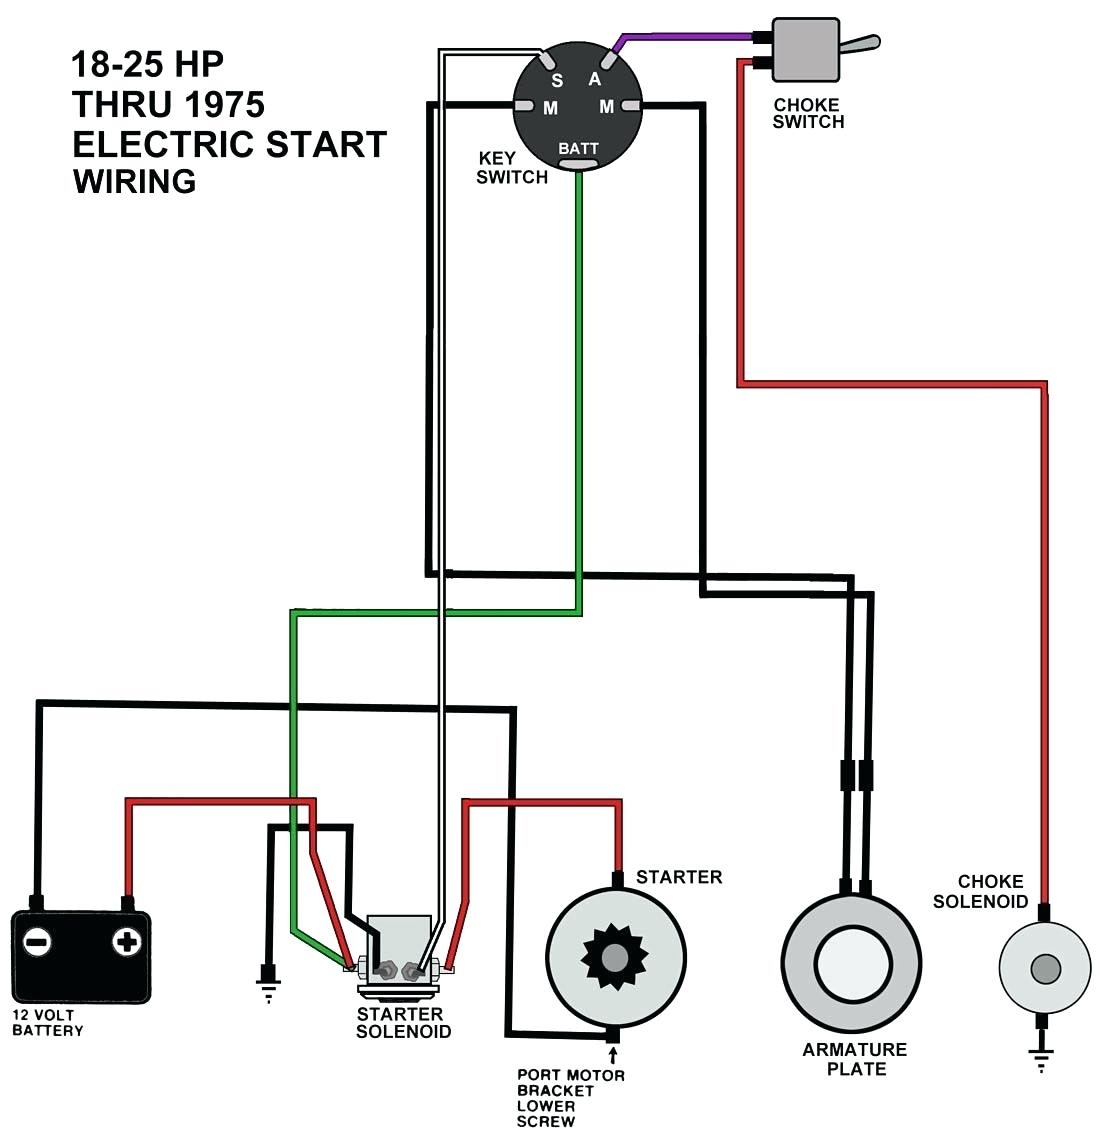 Wiring Diagram For Boat Ignition Switch | Wiring Diagram - Ignition Switch Wiring Diagram